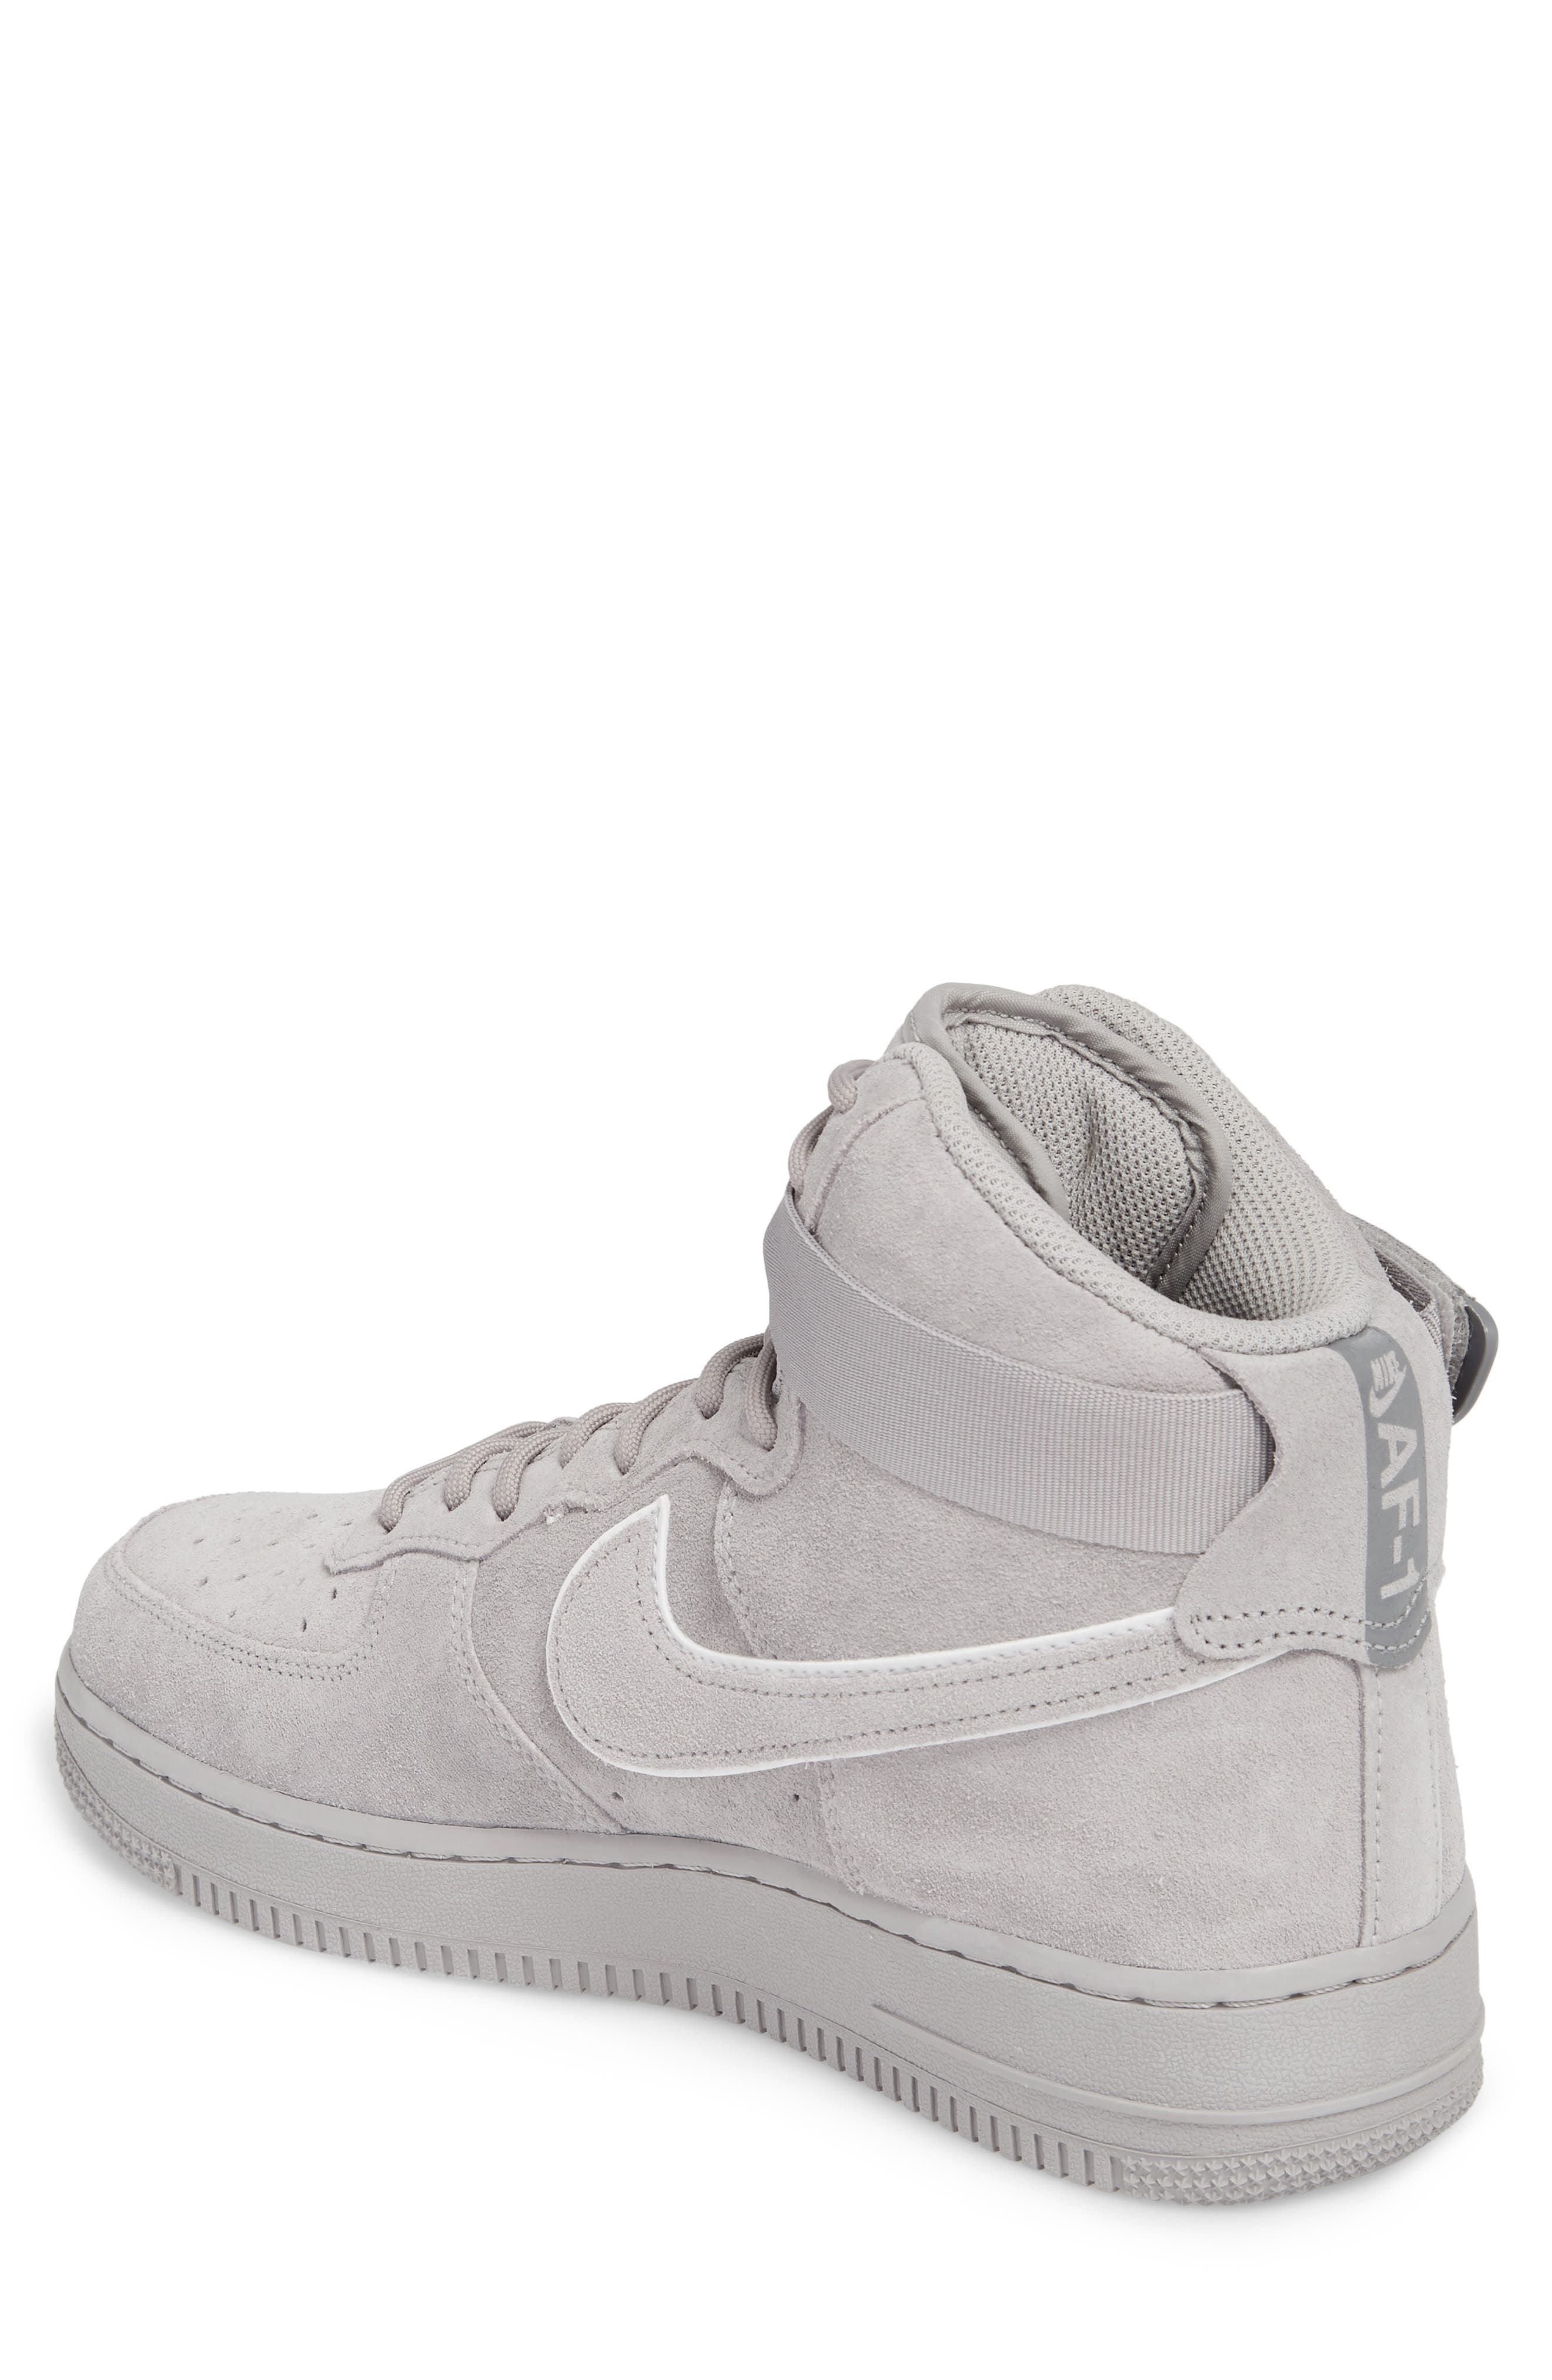 Air Force 1 High '07 LV8 Suede Sneaker,                             Alternate thumbnail 2, color,                             023